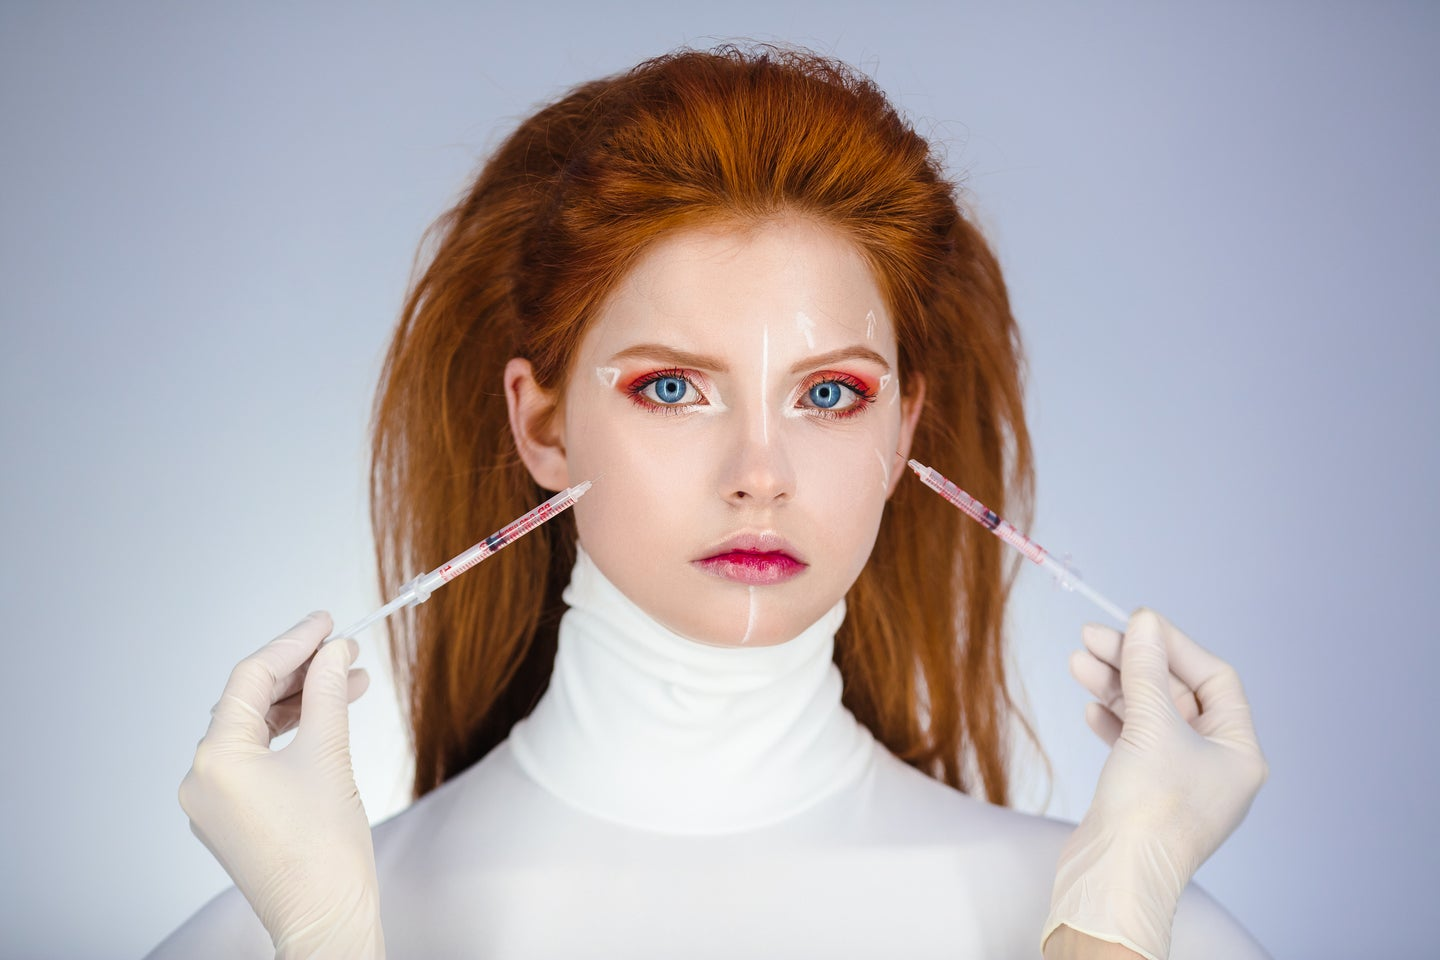 A conceptual botox procedure on a red-haired model